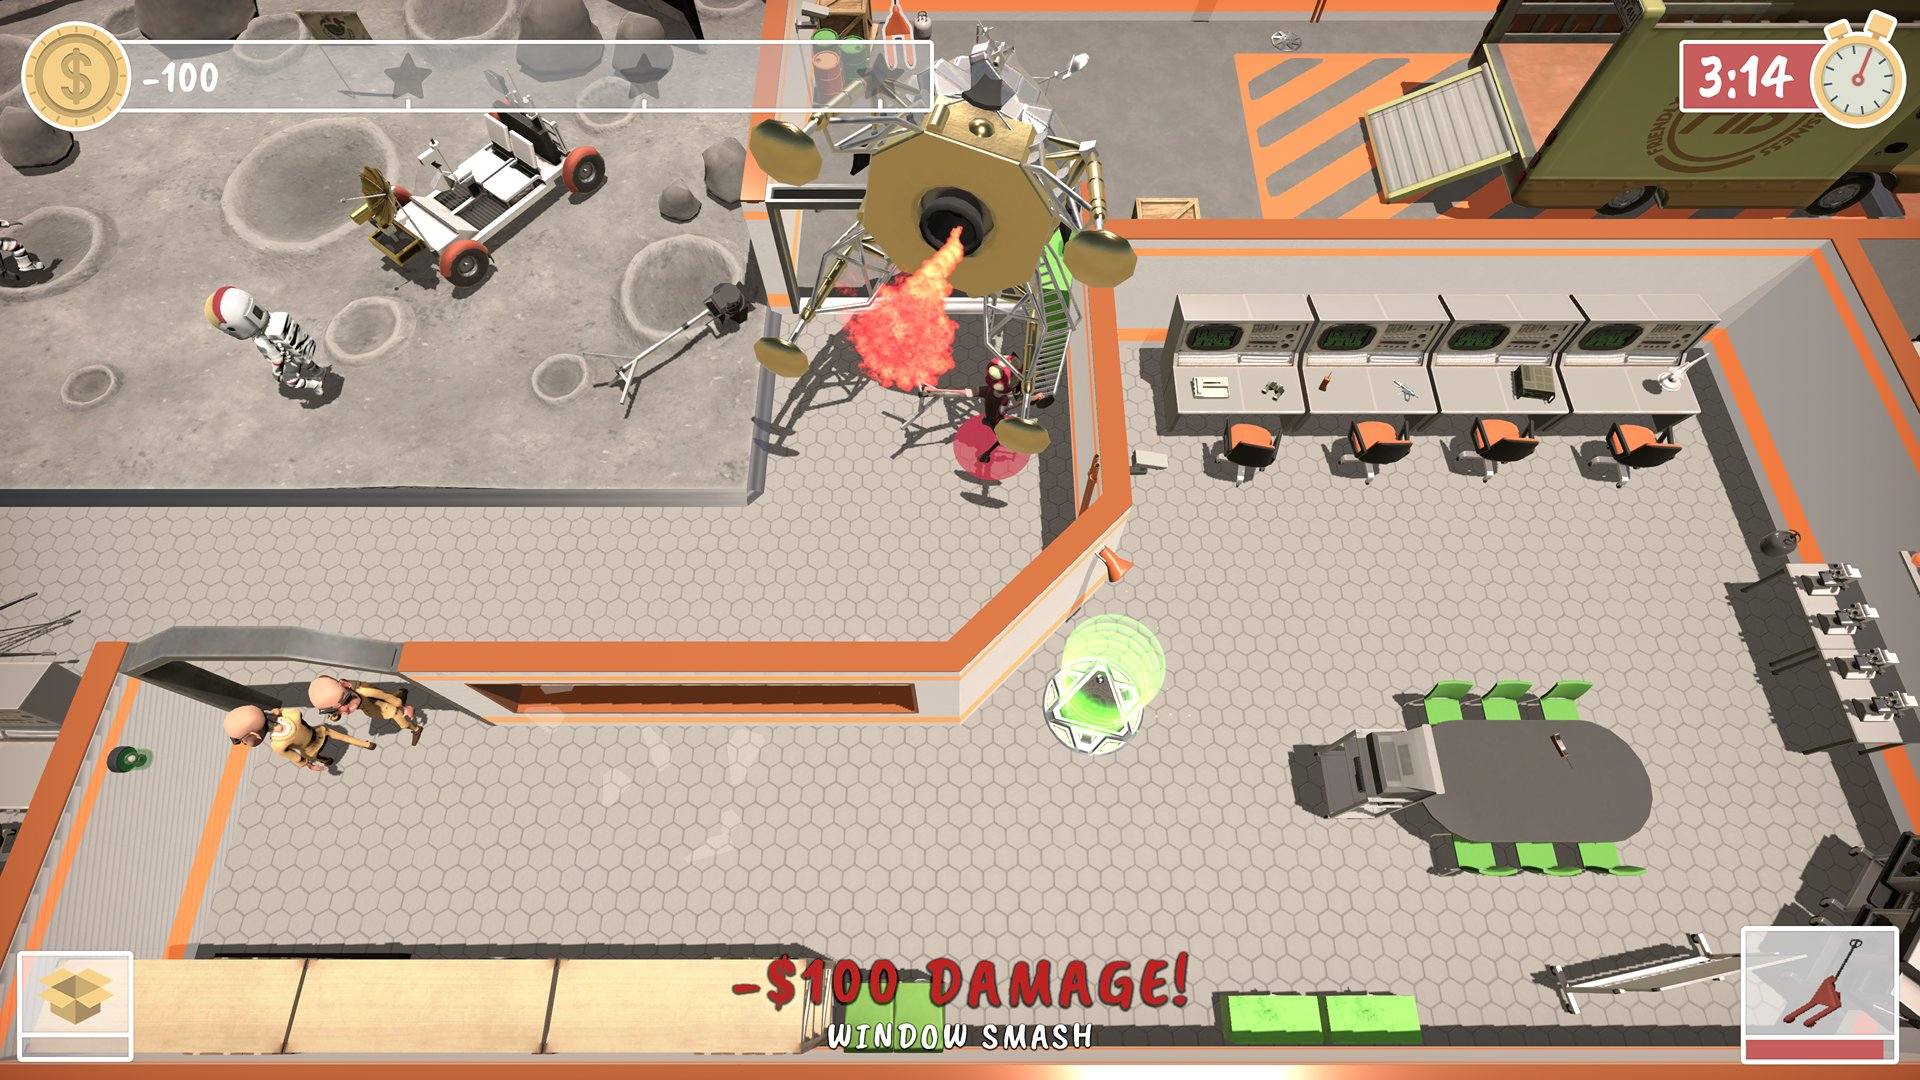 A screenshot from Get Packed, your team has just accidentally smashed a window at what seems to be a lunar base.